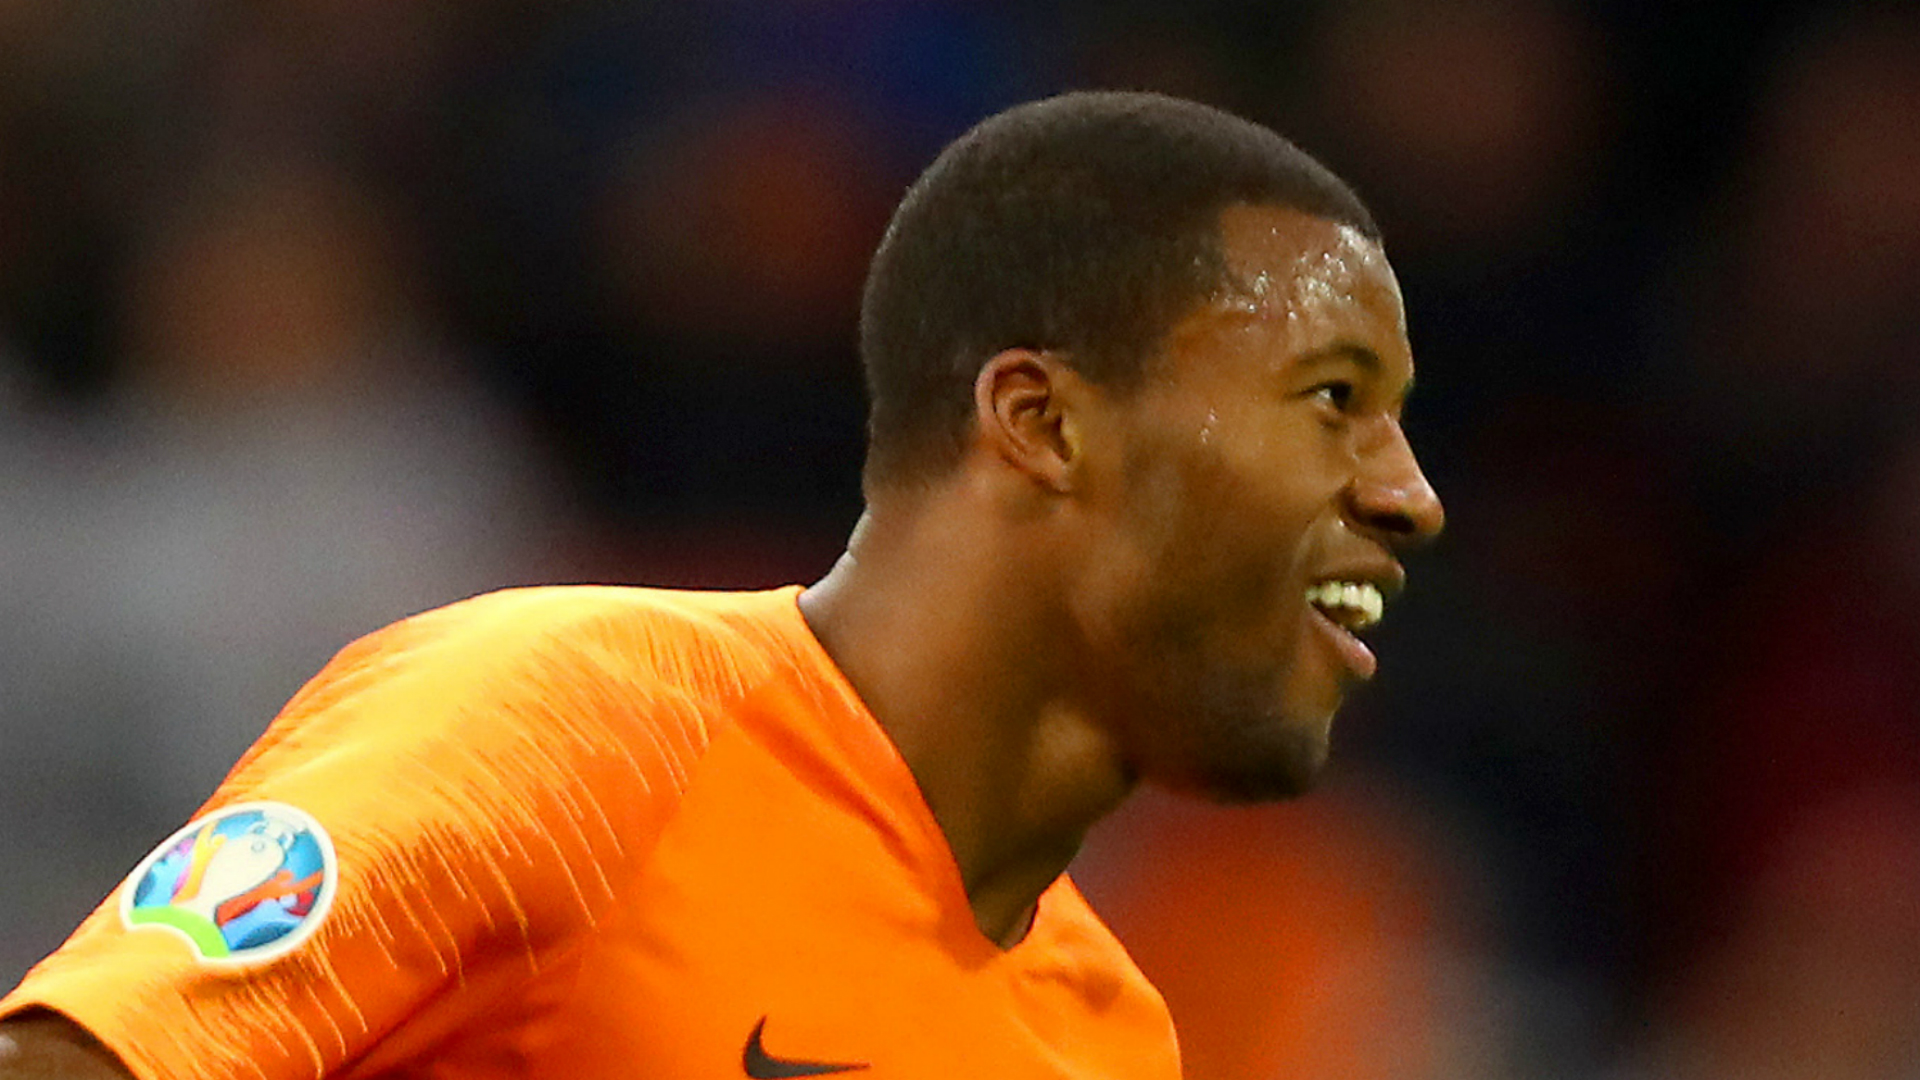 Hat-trick hero Wijnaldum 'so happy', says Netherlands boss Koeman